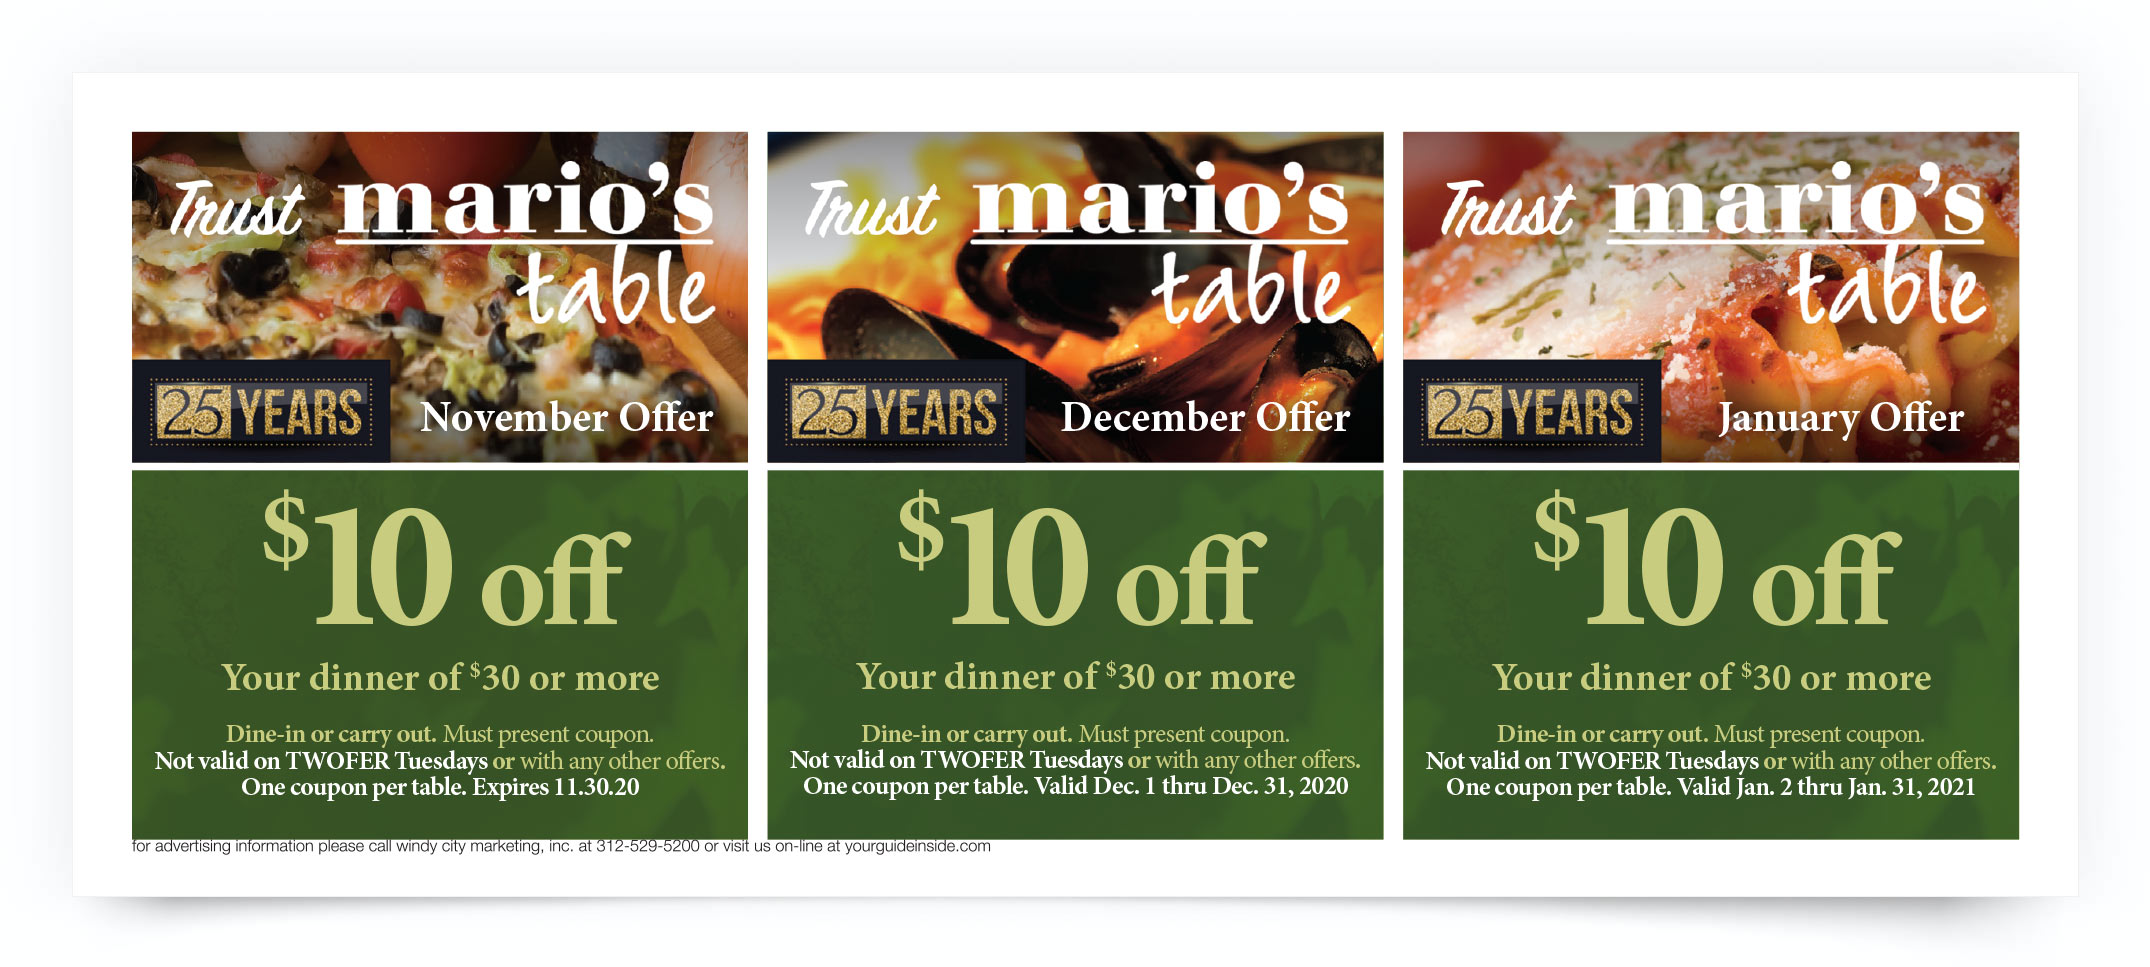 Marios Table Chicago Coupon Offer